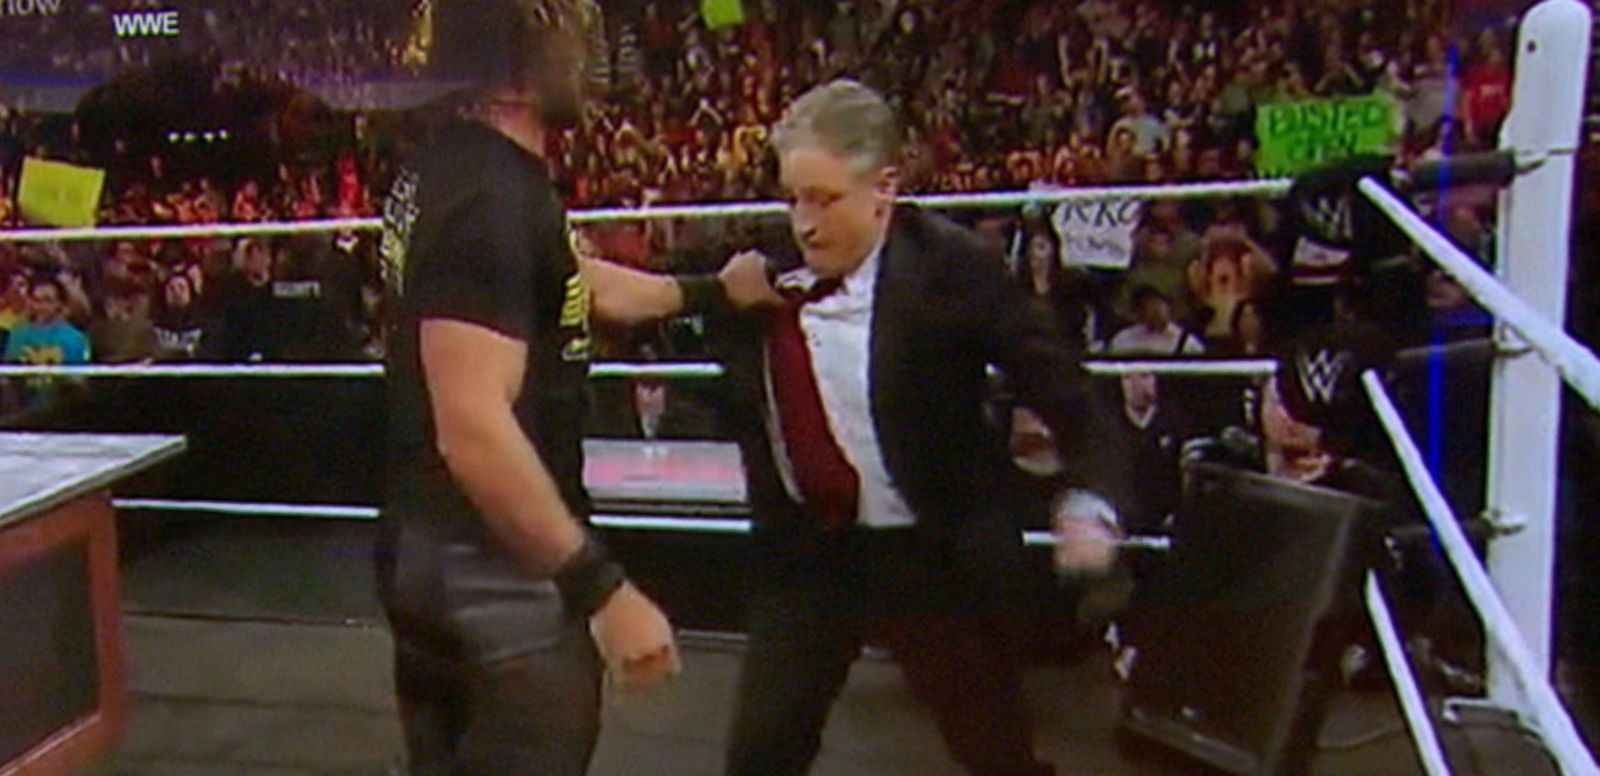 VIDEO: Jon Stewart, Seth Rollins Feud on WWE's Monday Night Raw